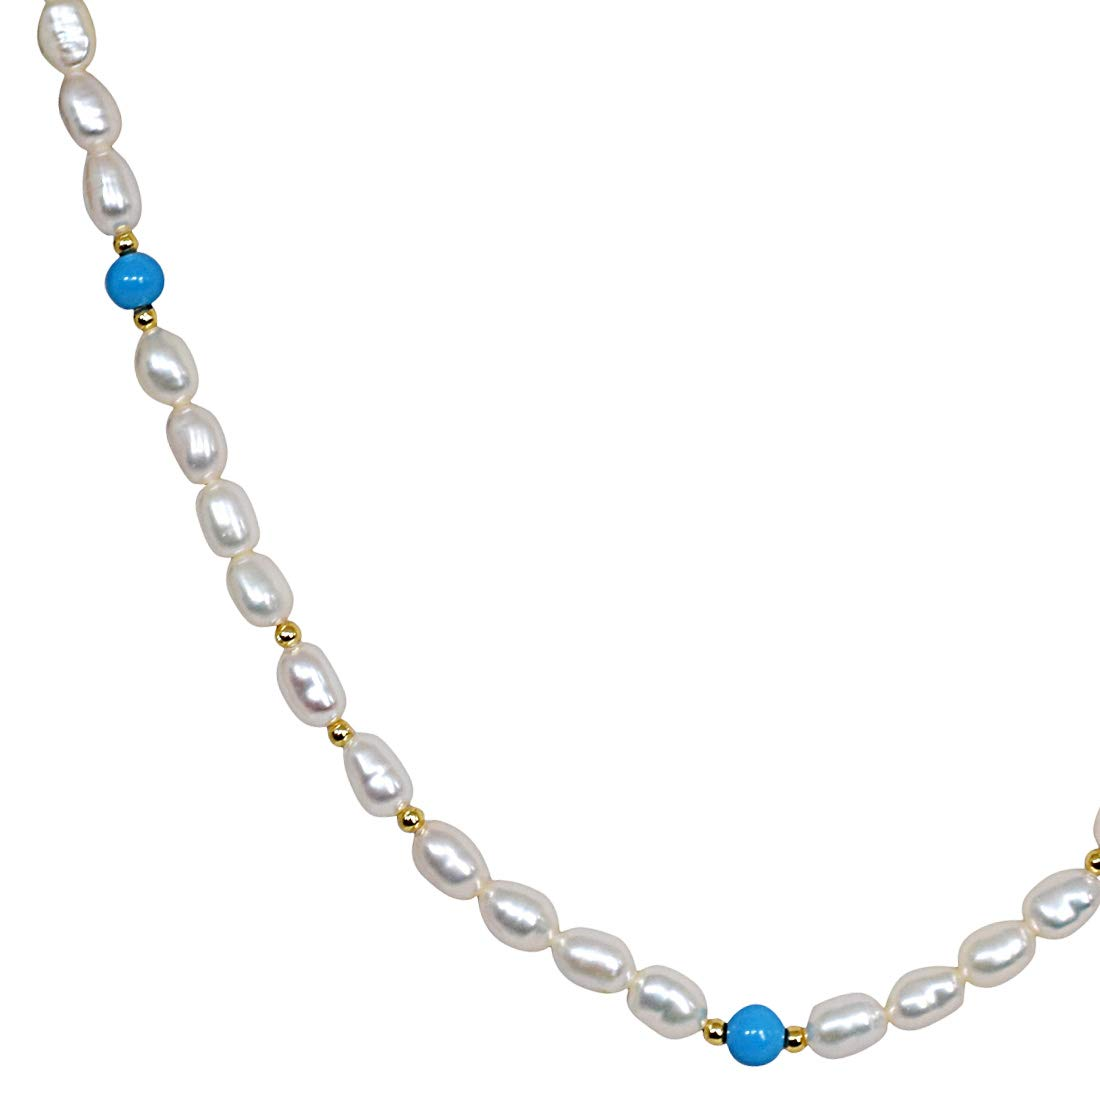 Turquoise Twinkle - Single Line Real Rice Pearl & Turquoise Beads Necklace for Women (SN241)